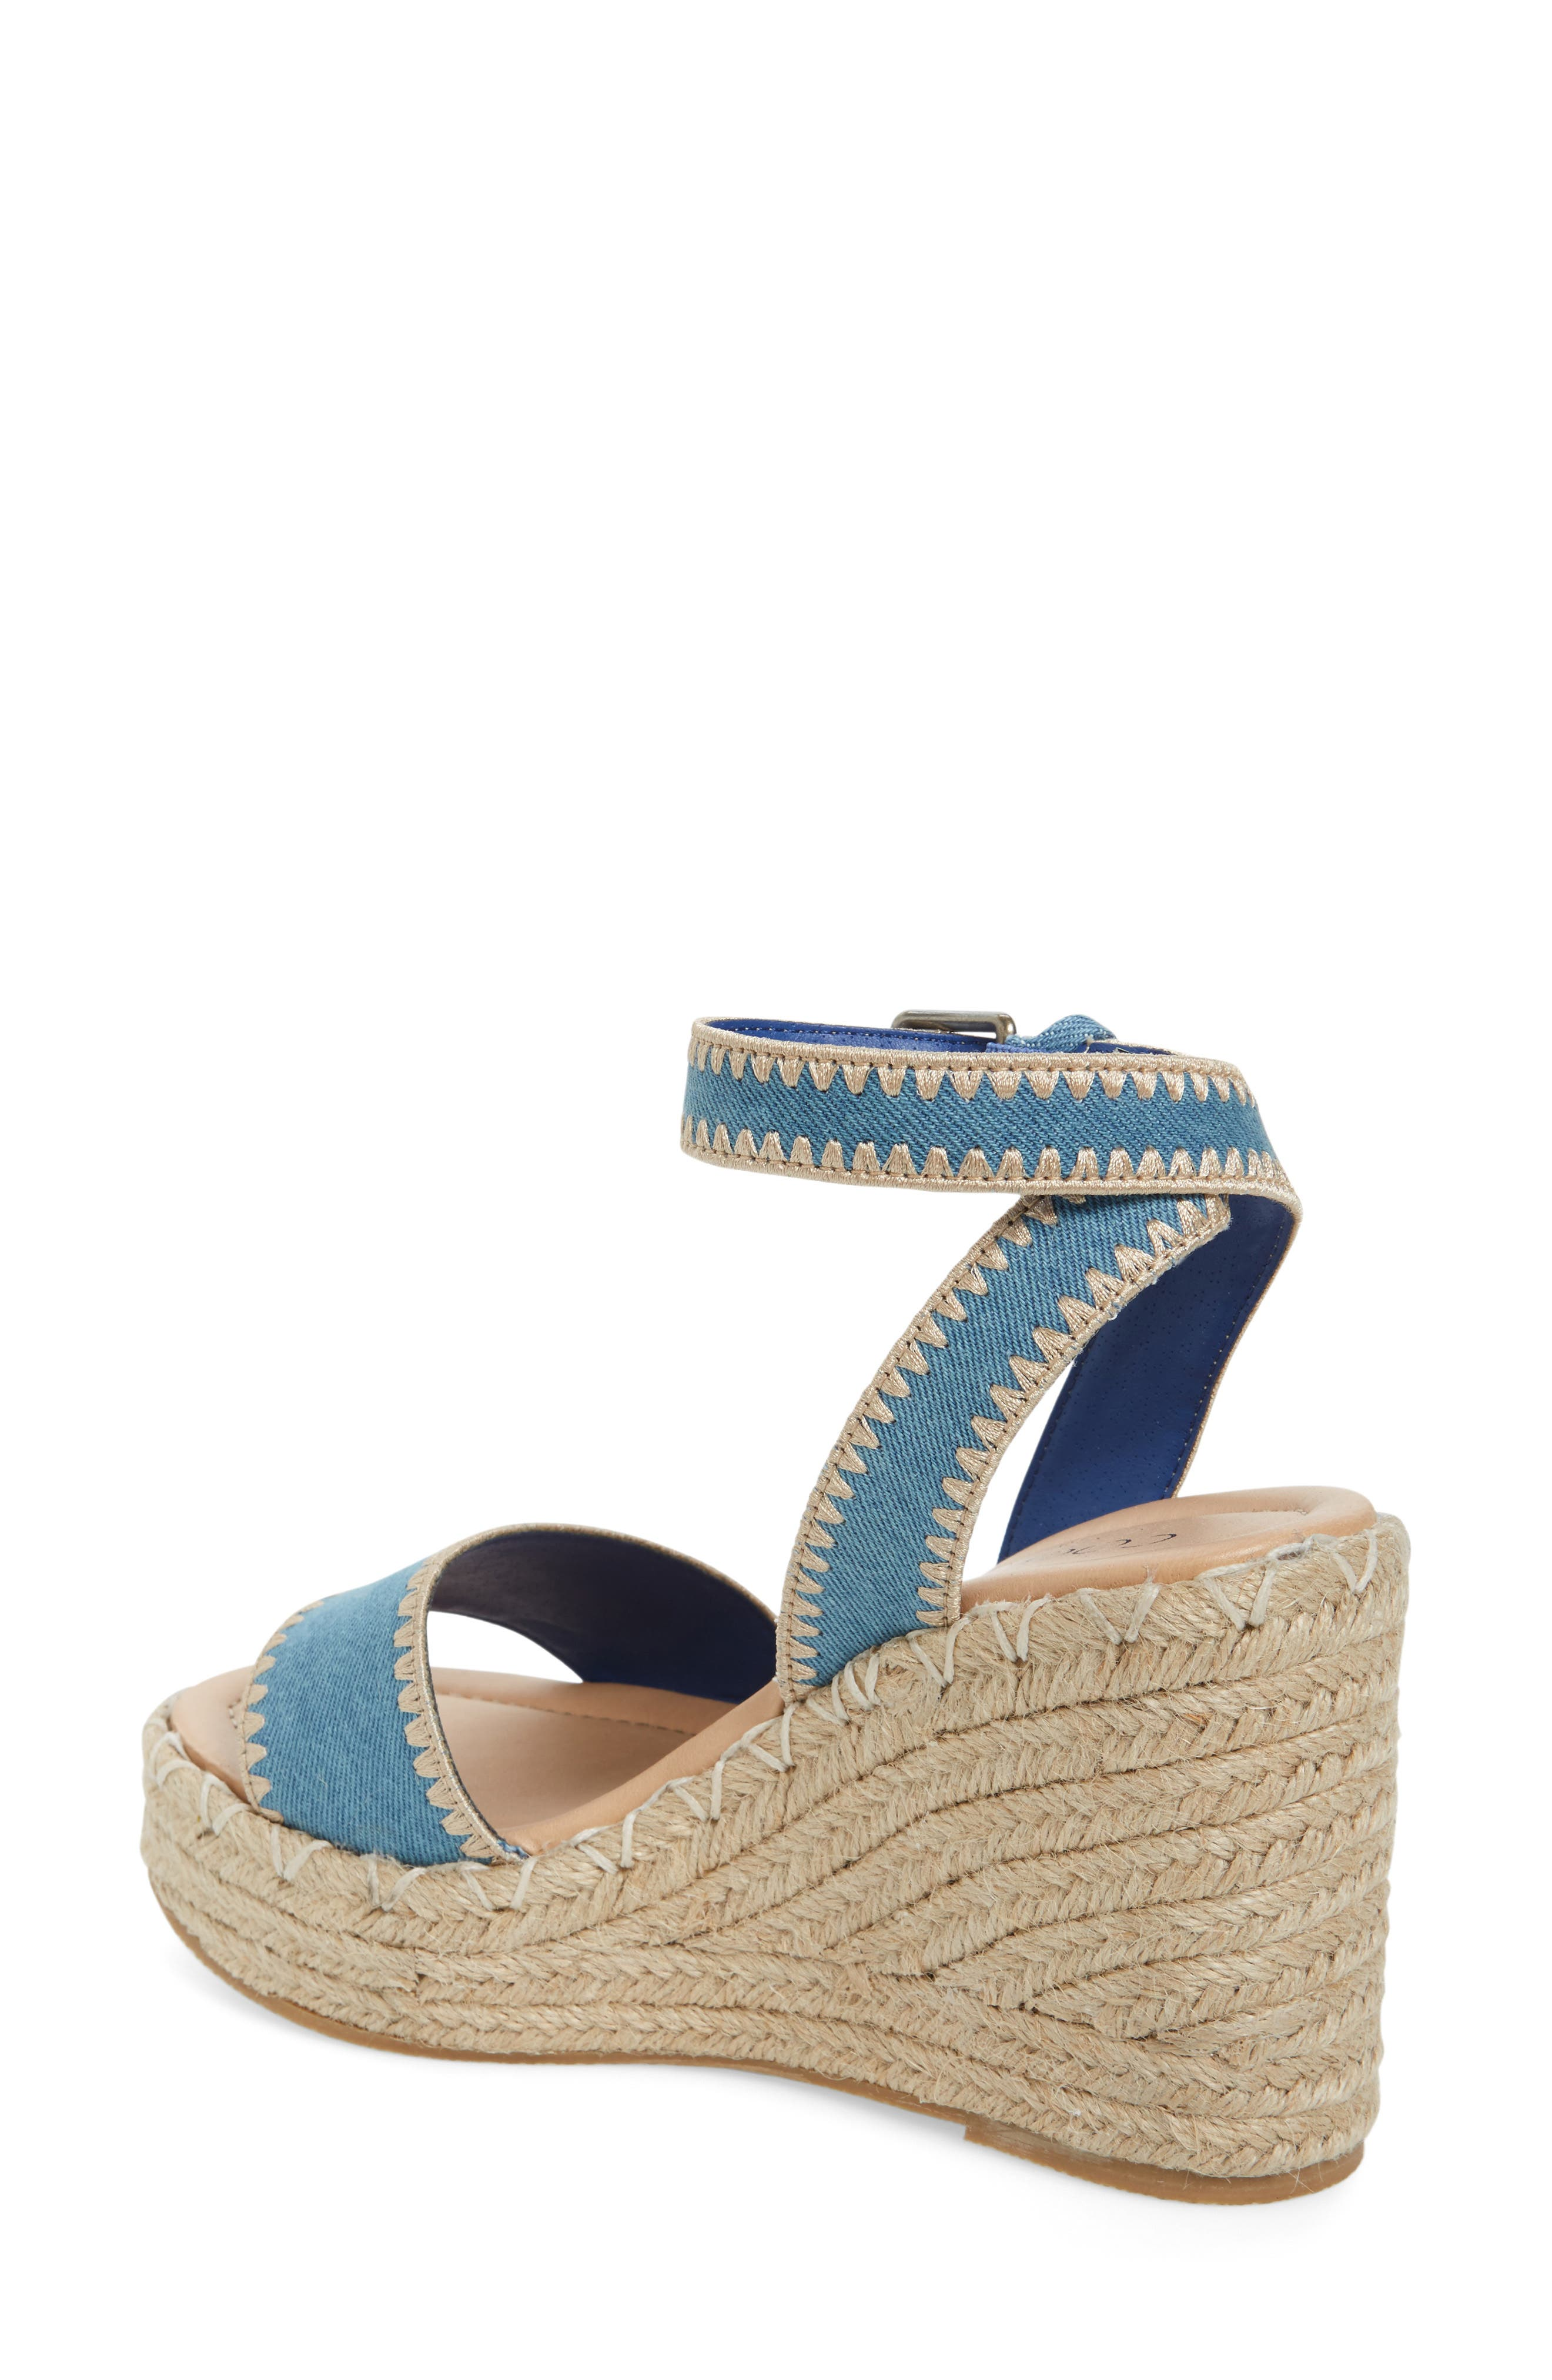 Alternate Image 2  - Coconuts by Matisse Frenchie Wedge Sandal (Women)